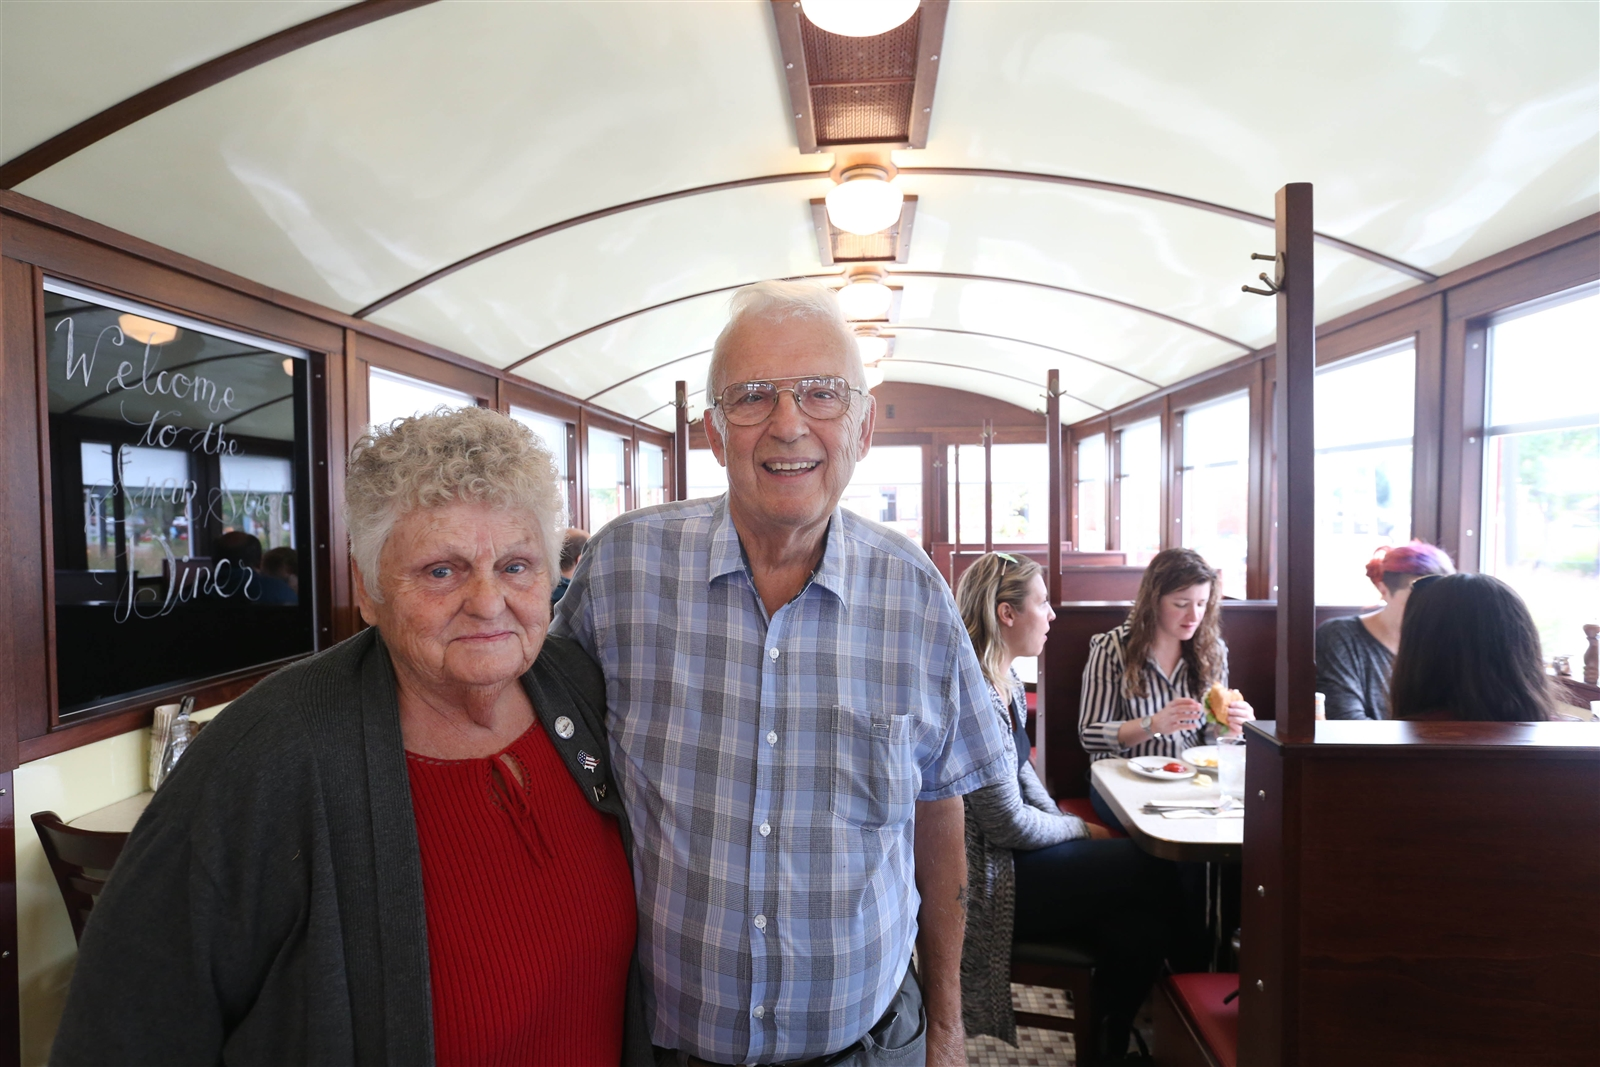 Jim and Betty McBride ran the 1930s diner for 30 years in Newark, NY, before selling it to the Zemskys a few years ago.